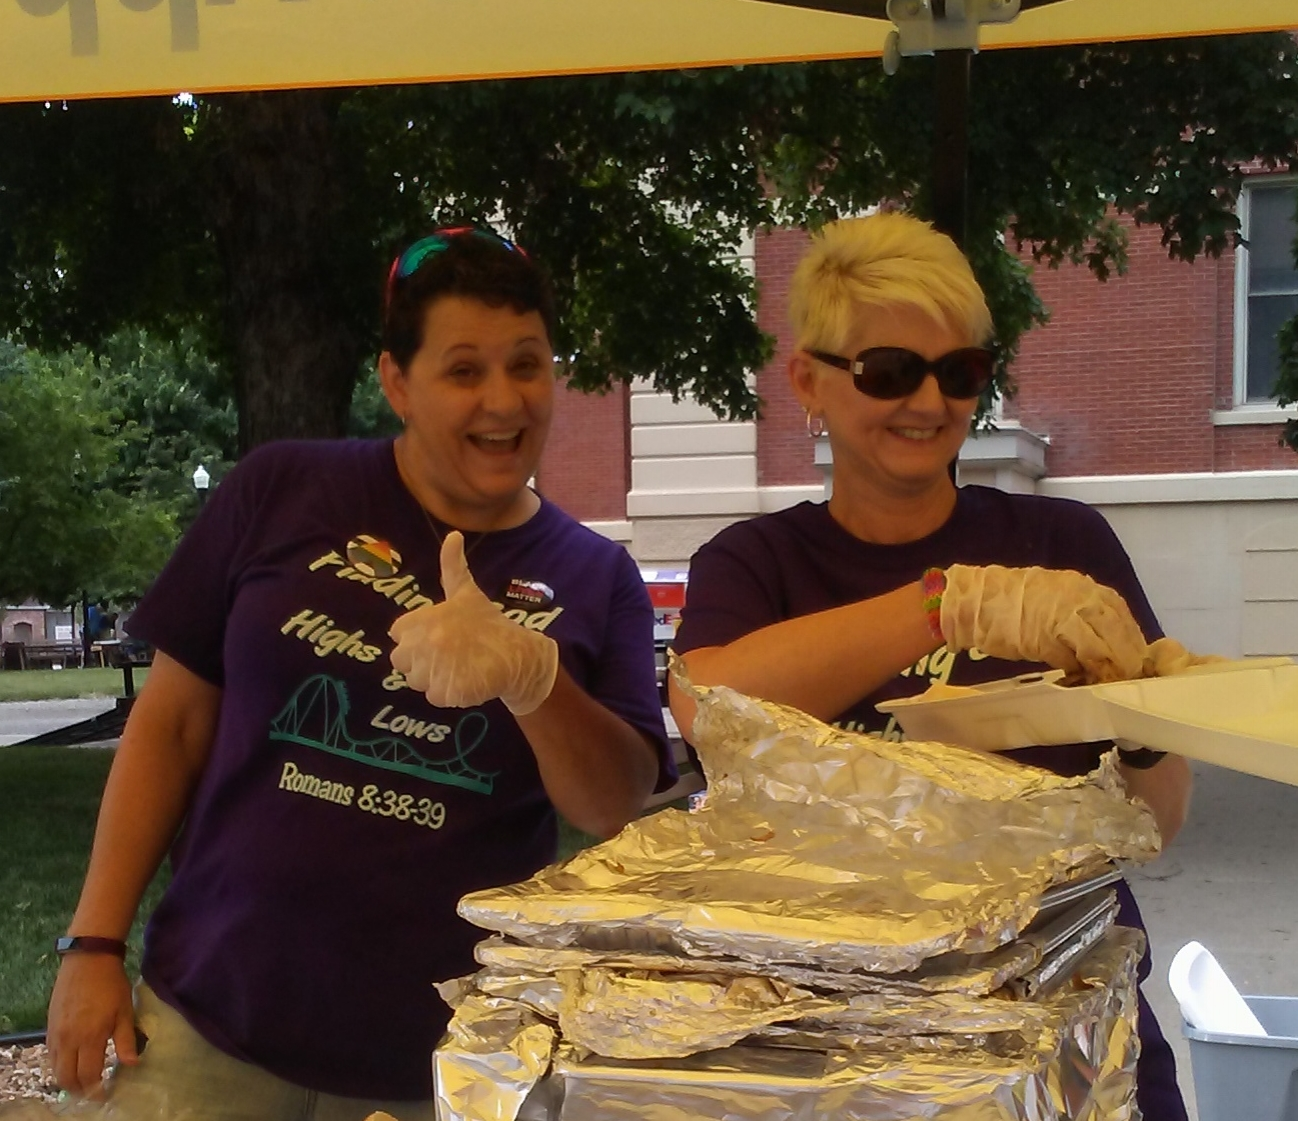 Kris Milliron &Glen Clemens are also helping at this Saline County BBQ lunch service.